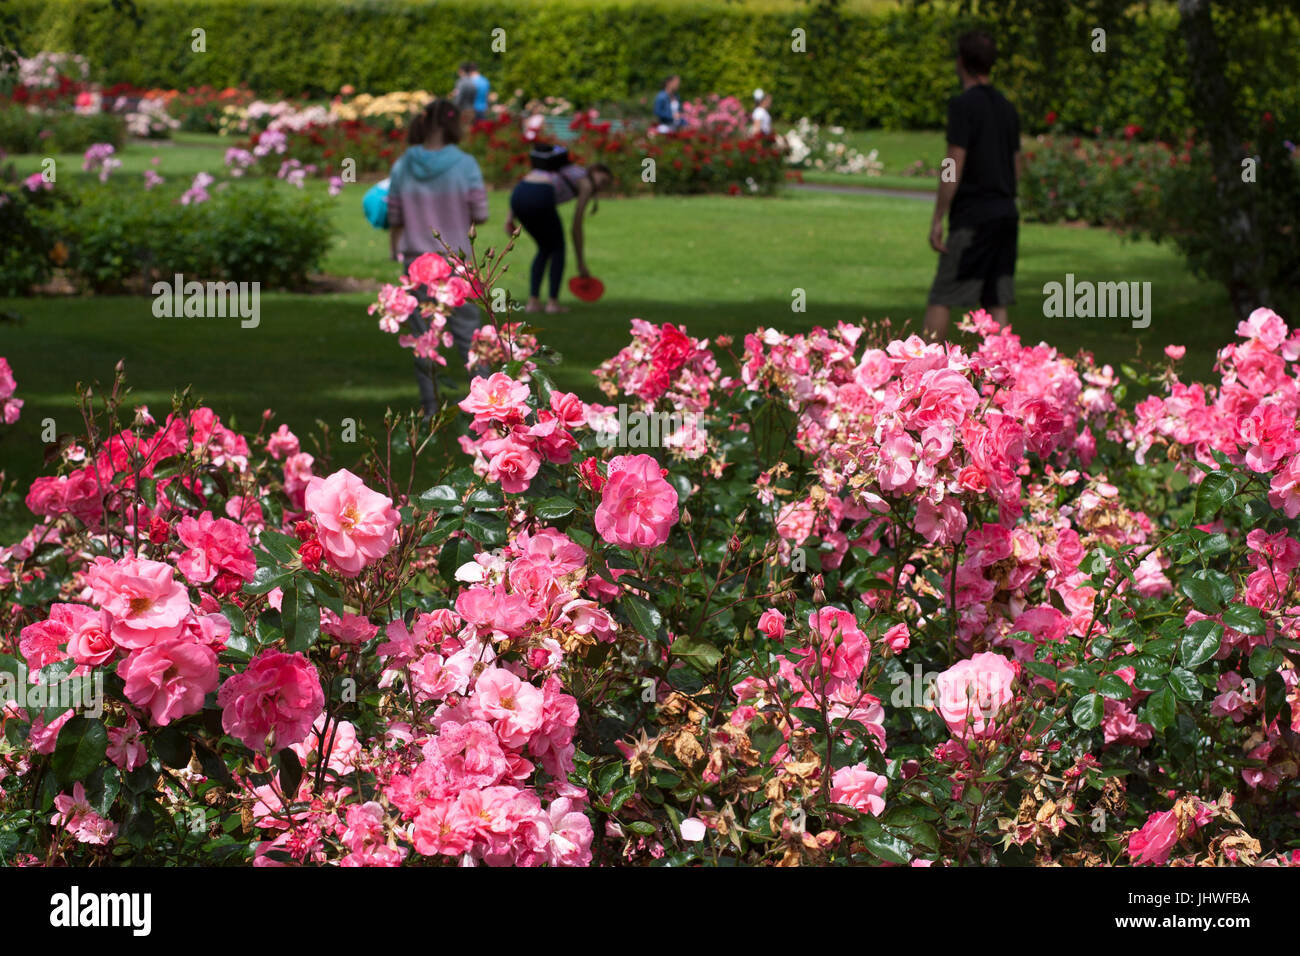 Large Lush Display Of Rose Bushes In Bloom Flowers Park In Late